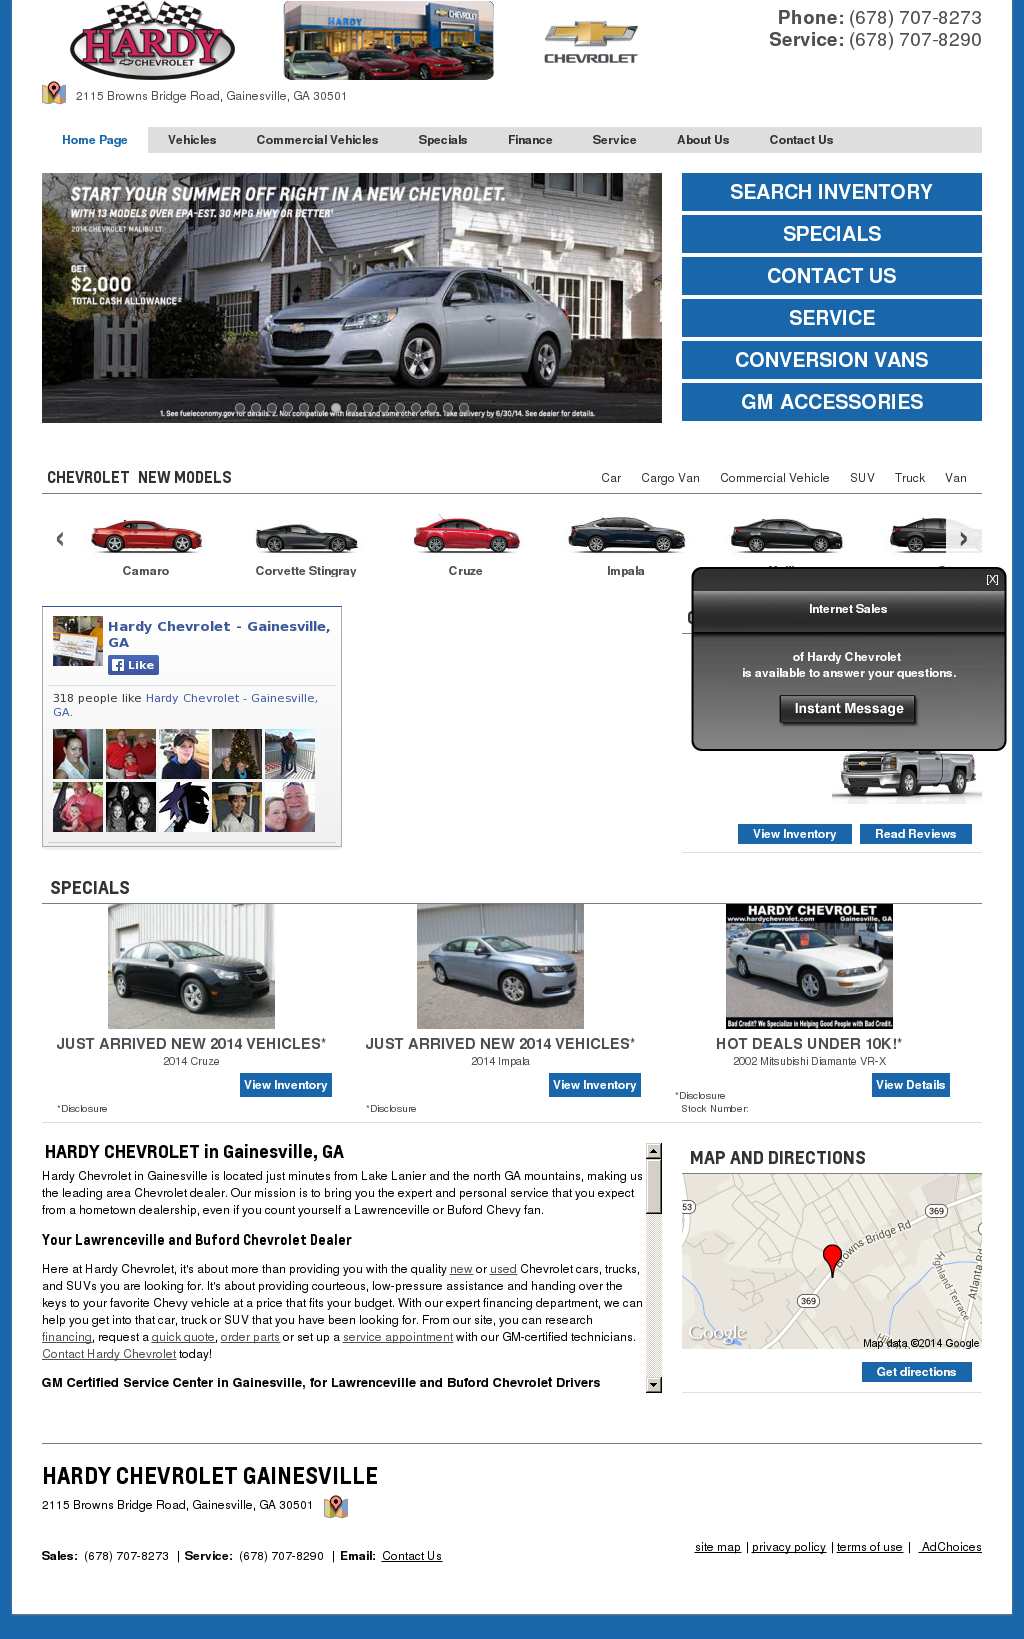 Hardy Chevrolet Gainesville Ga >> Hardy Chevrolet Competitors Revenue And Employees Owler